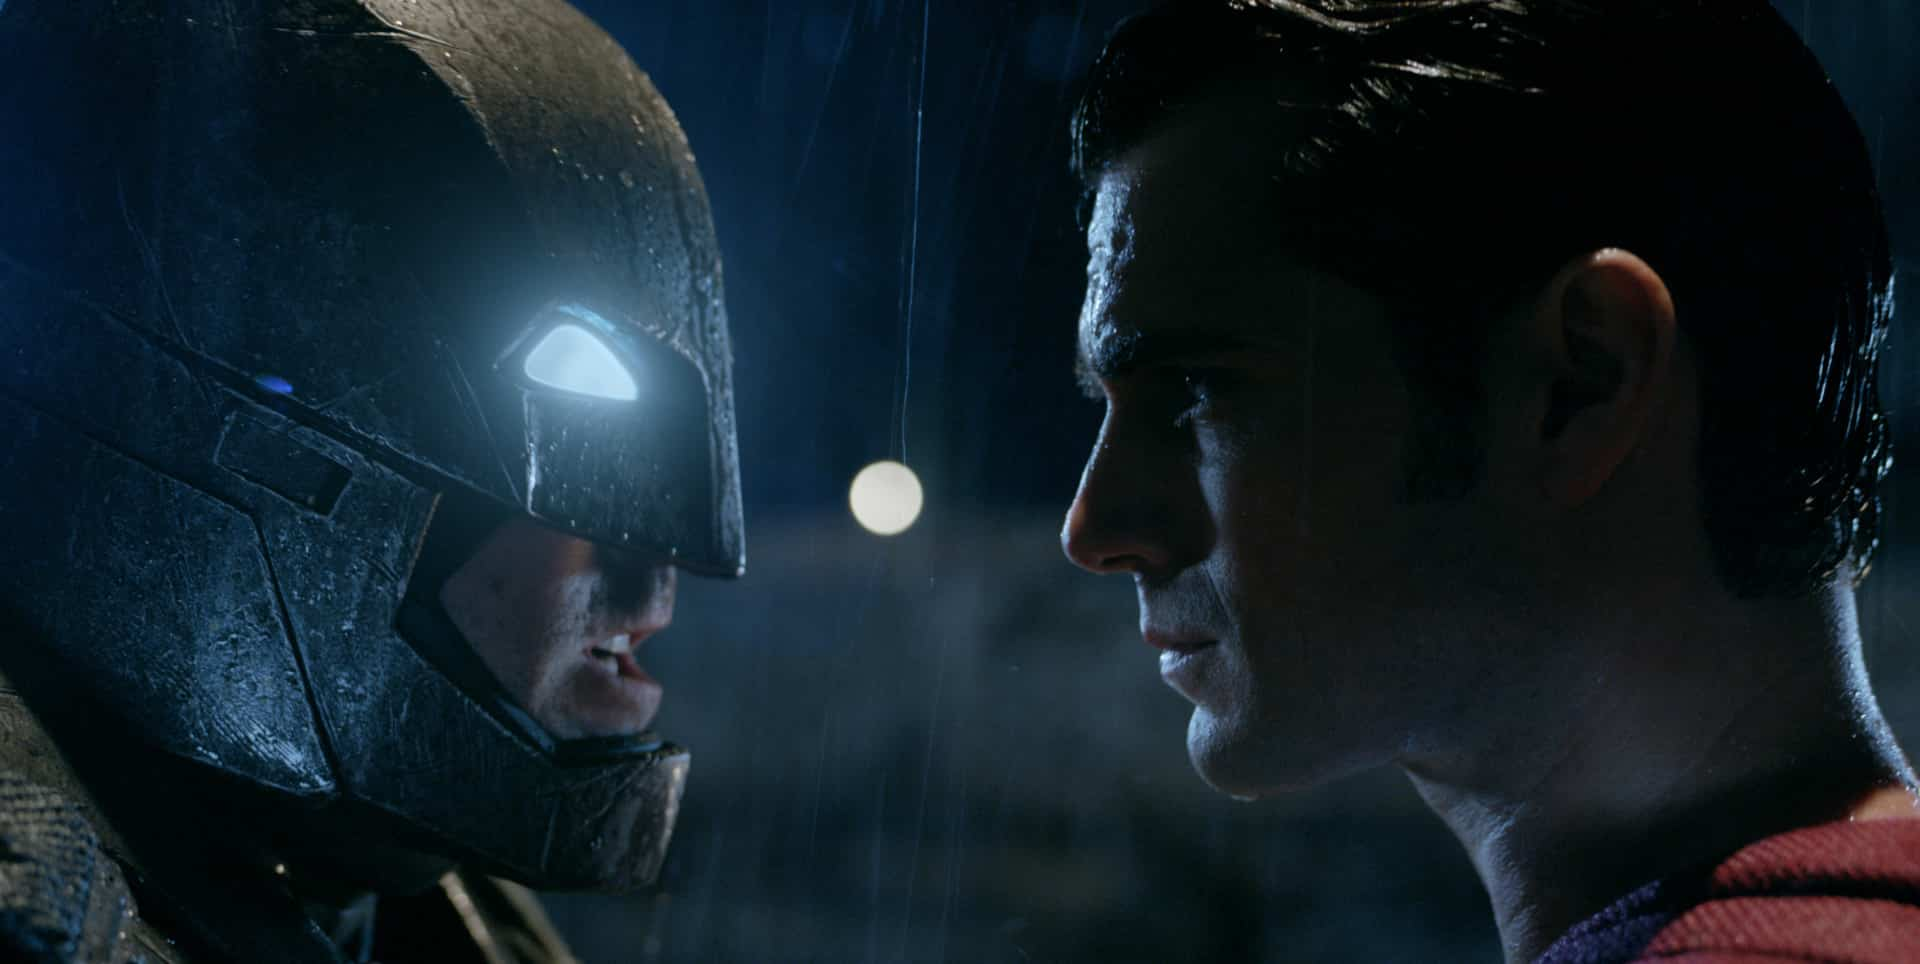 Warner Bros. WarnerMedia DCEU DC Extended Universe plan: retain Superman, Batman, Wonder Woman, and others, but with a new Flashpoint multiverse with The Flash that allows standalone films. Batman v Superman